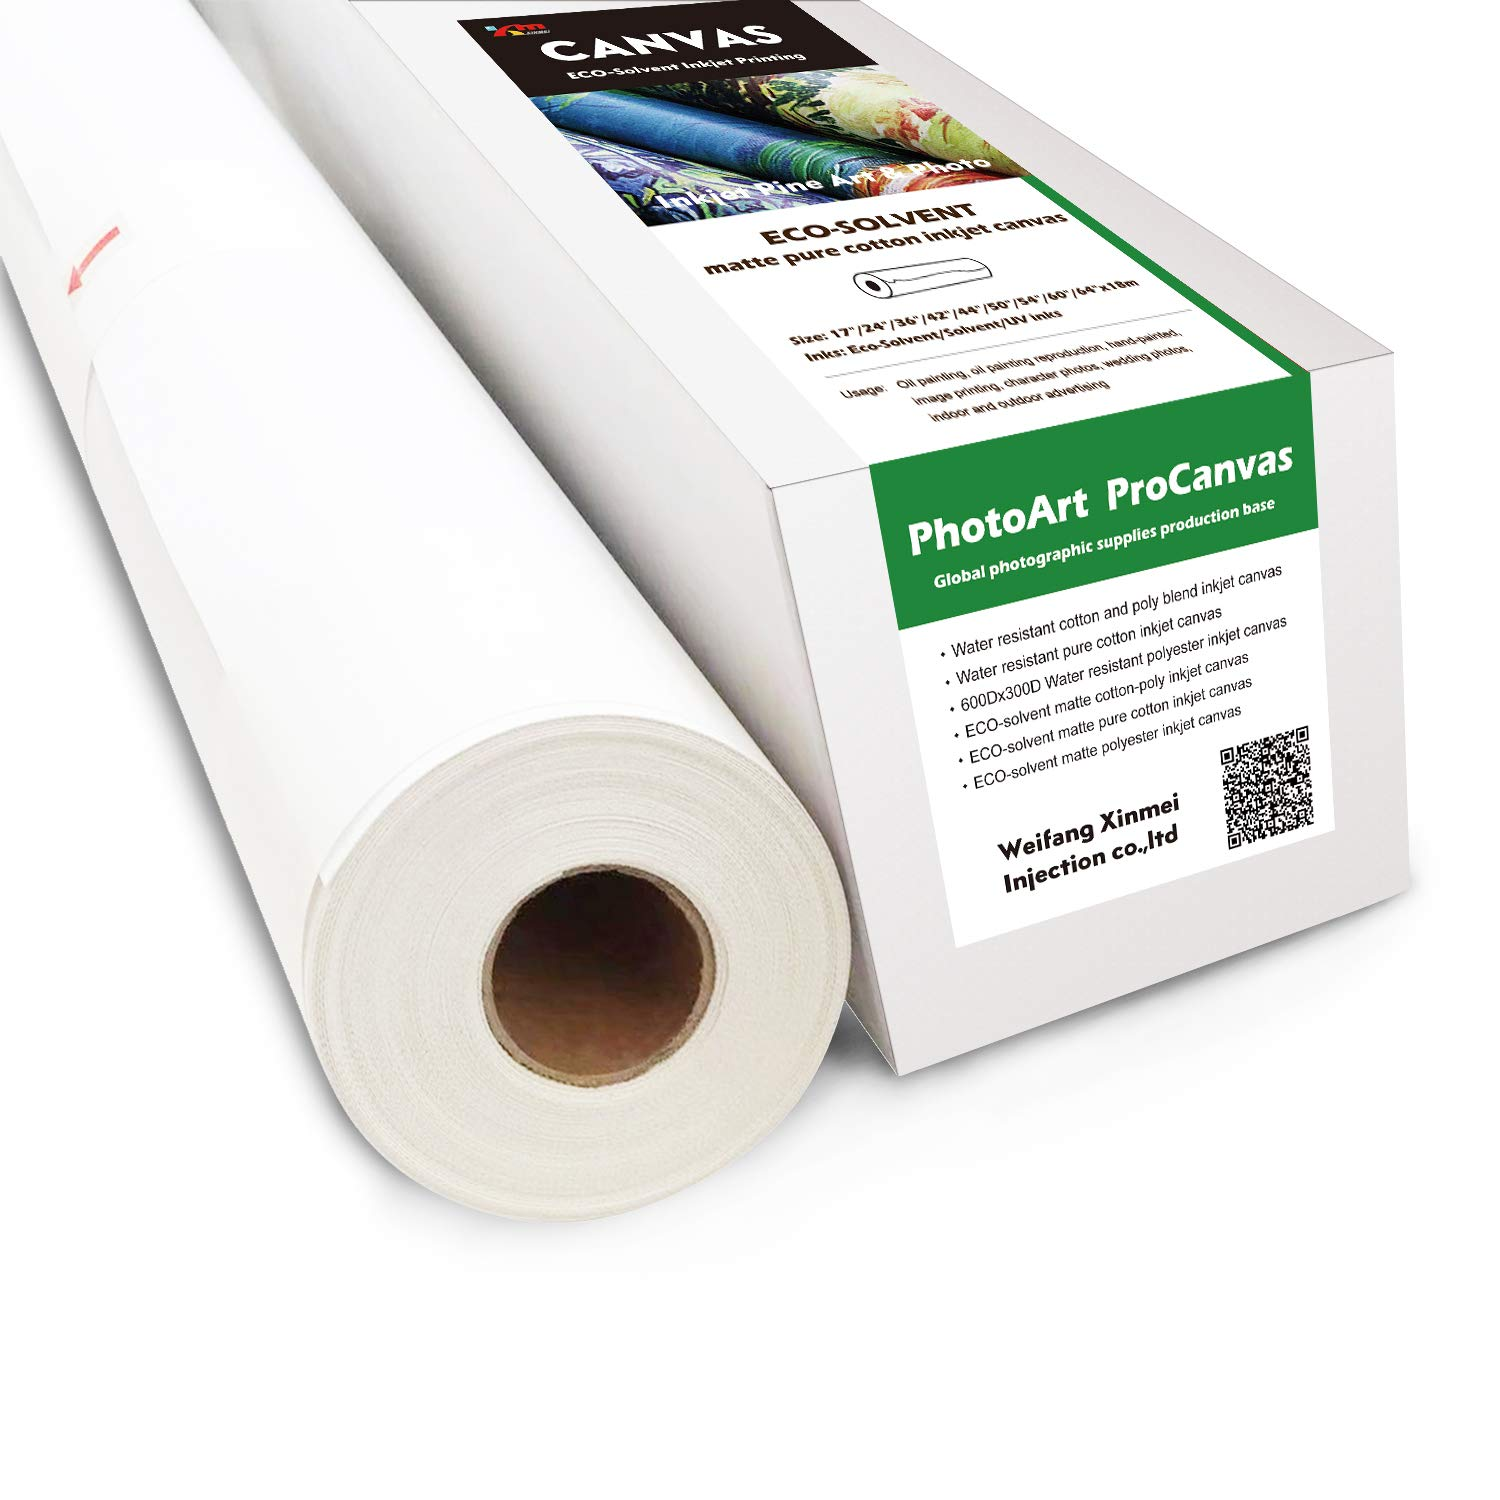 Eco-Solvent Matte Pure Cotton Inkjet Canvas (60'' x 60'(Pack of 4)) by Sheepcamel